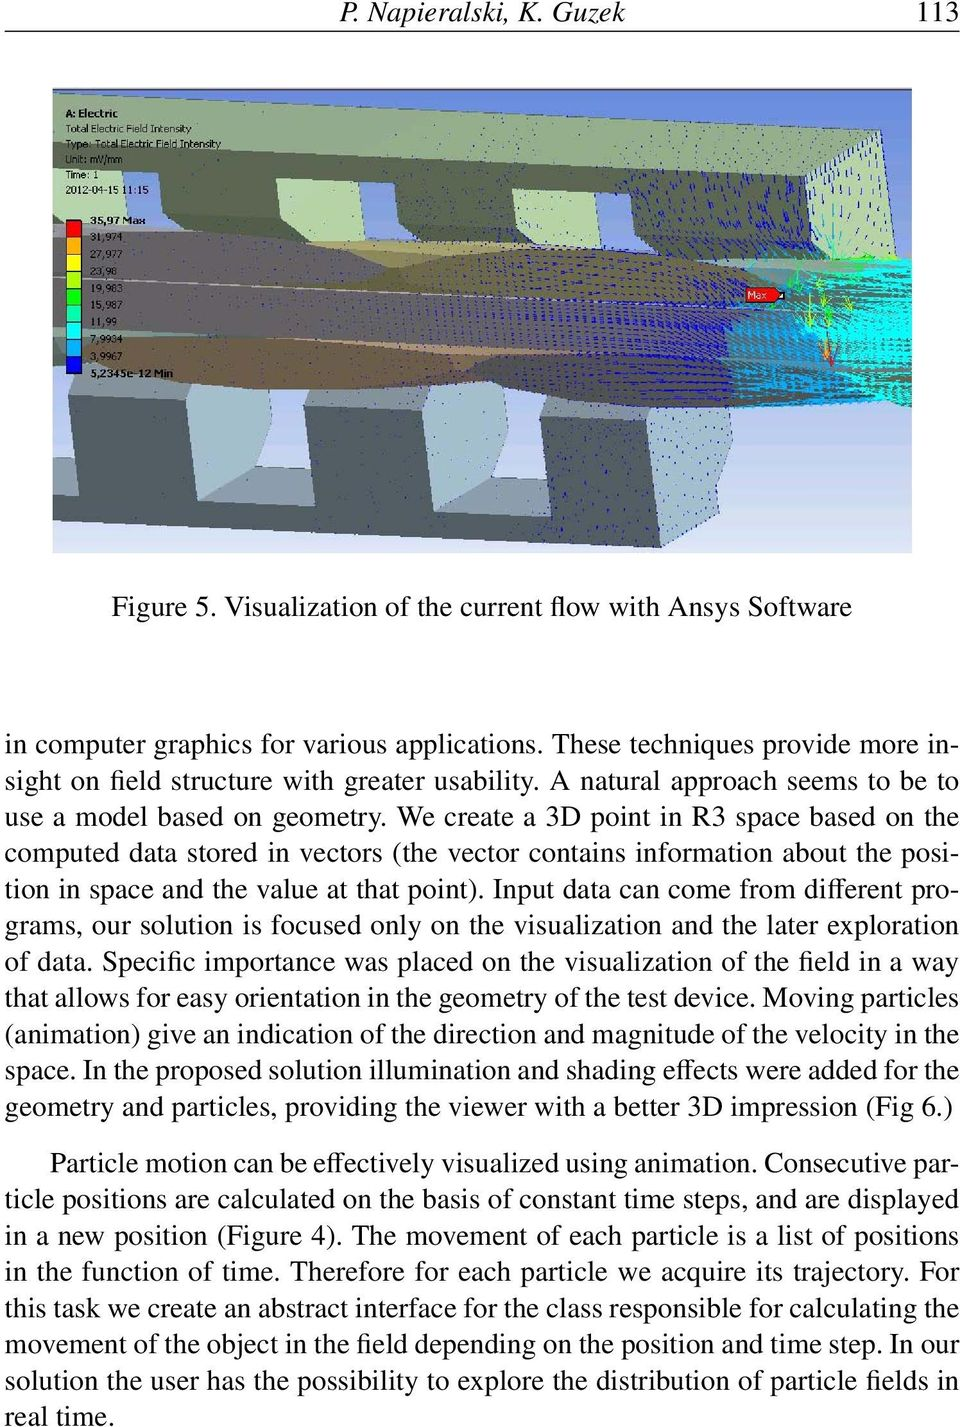 We create a 3D point in R3 space based on the computed data stored in vectors (the vector contains information about the position in space and the value at that point).